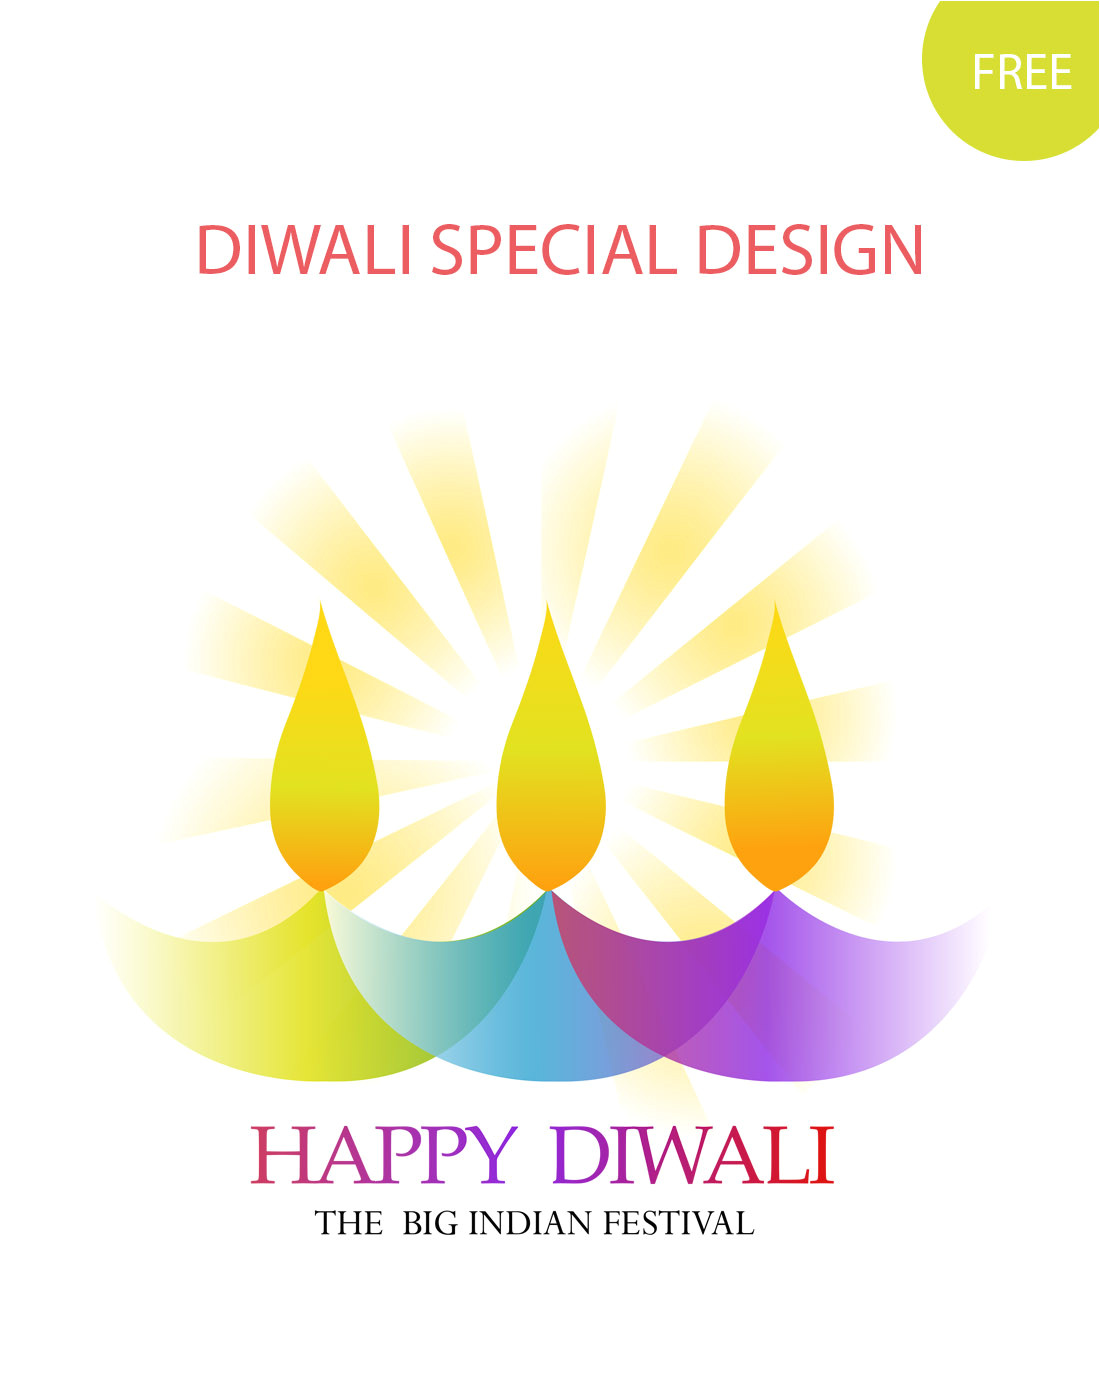 diwali greetings template